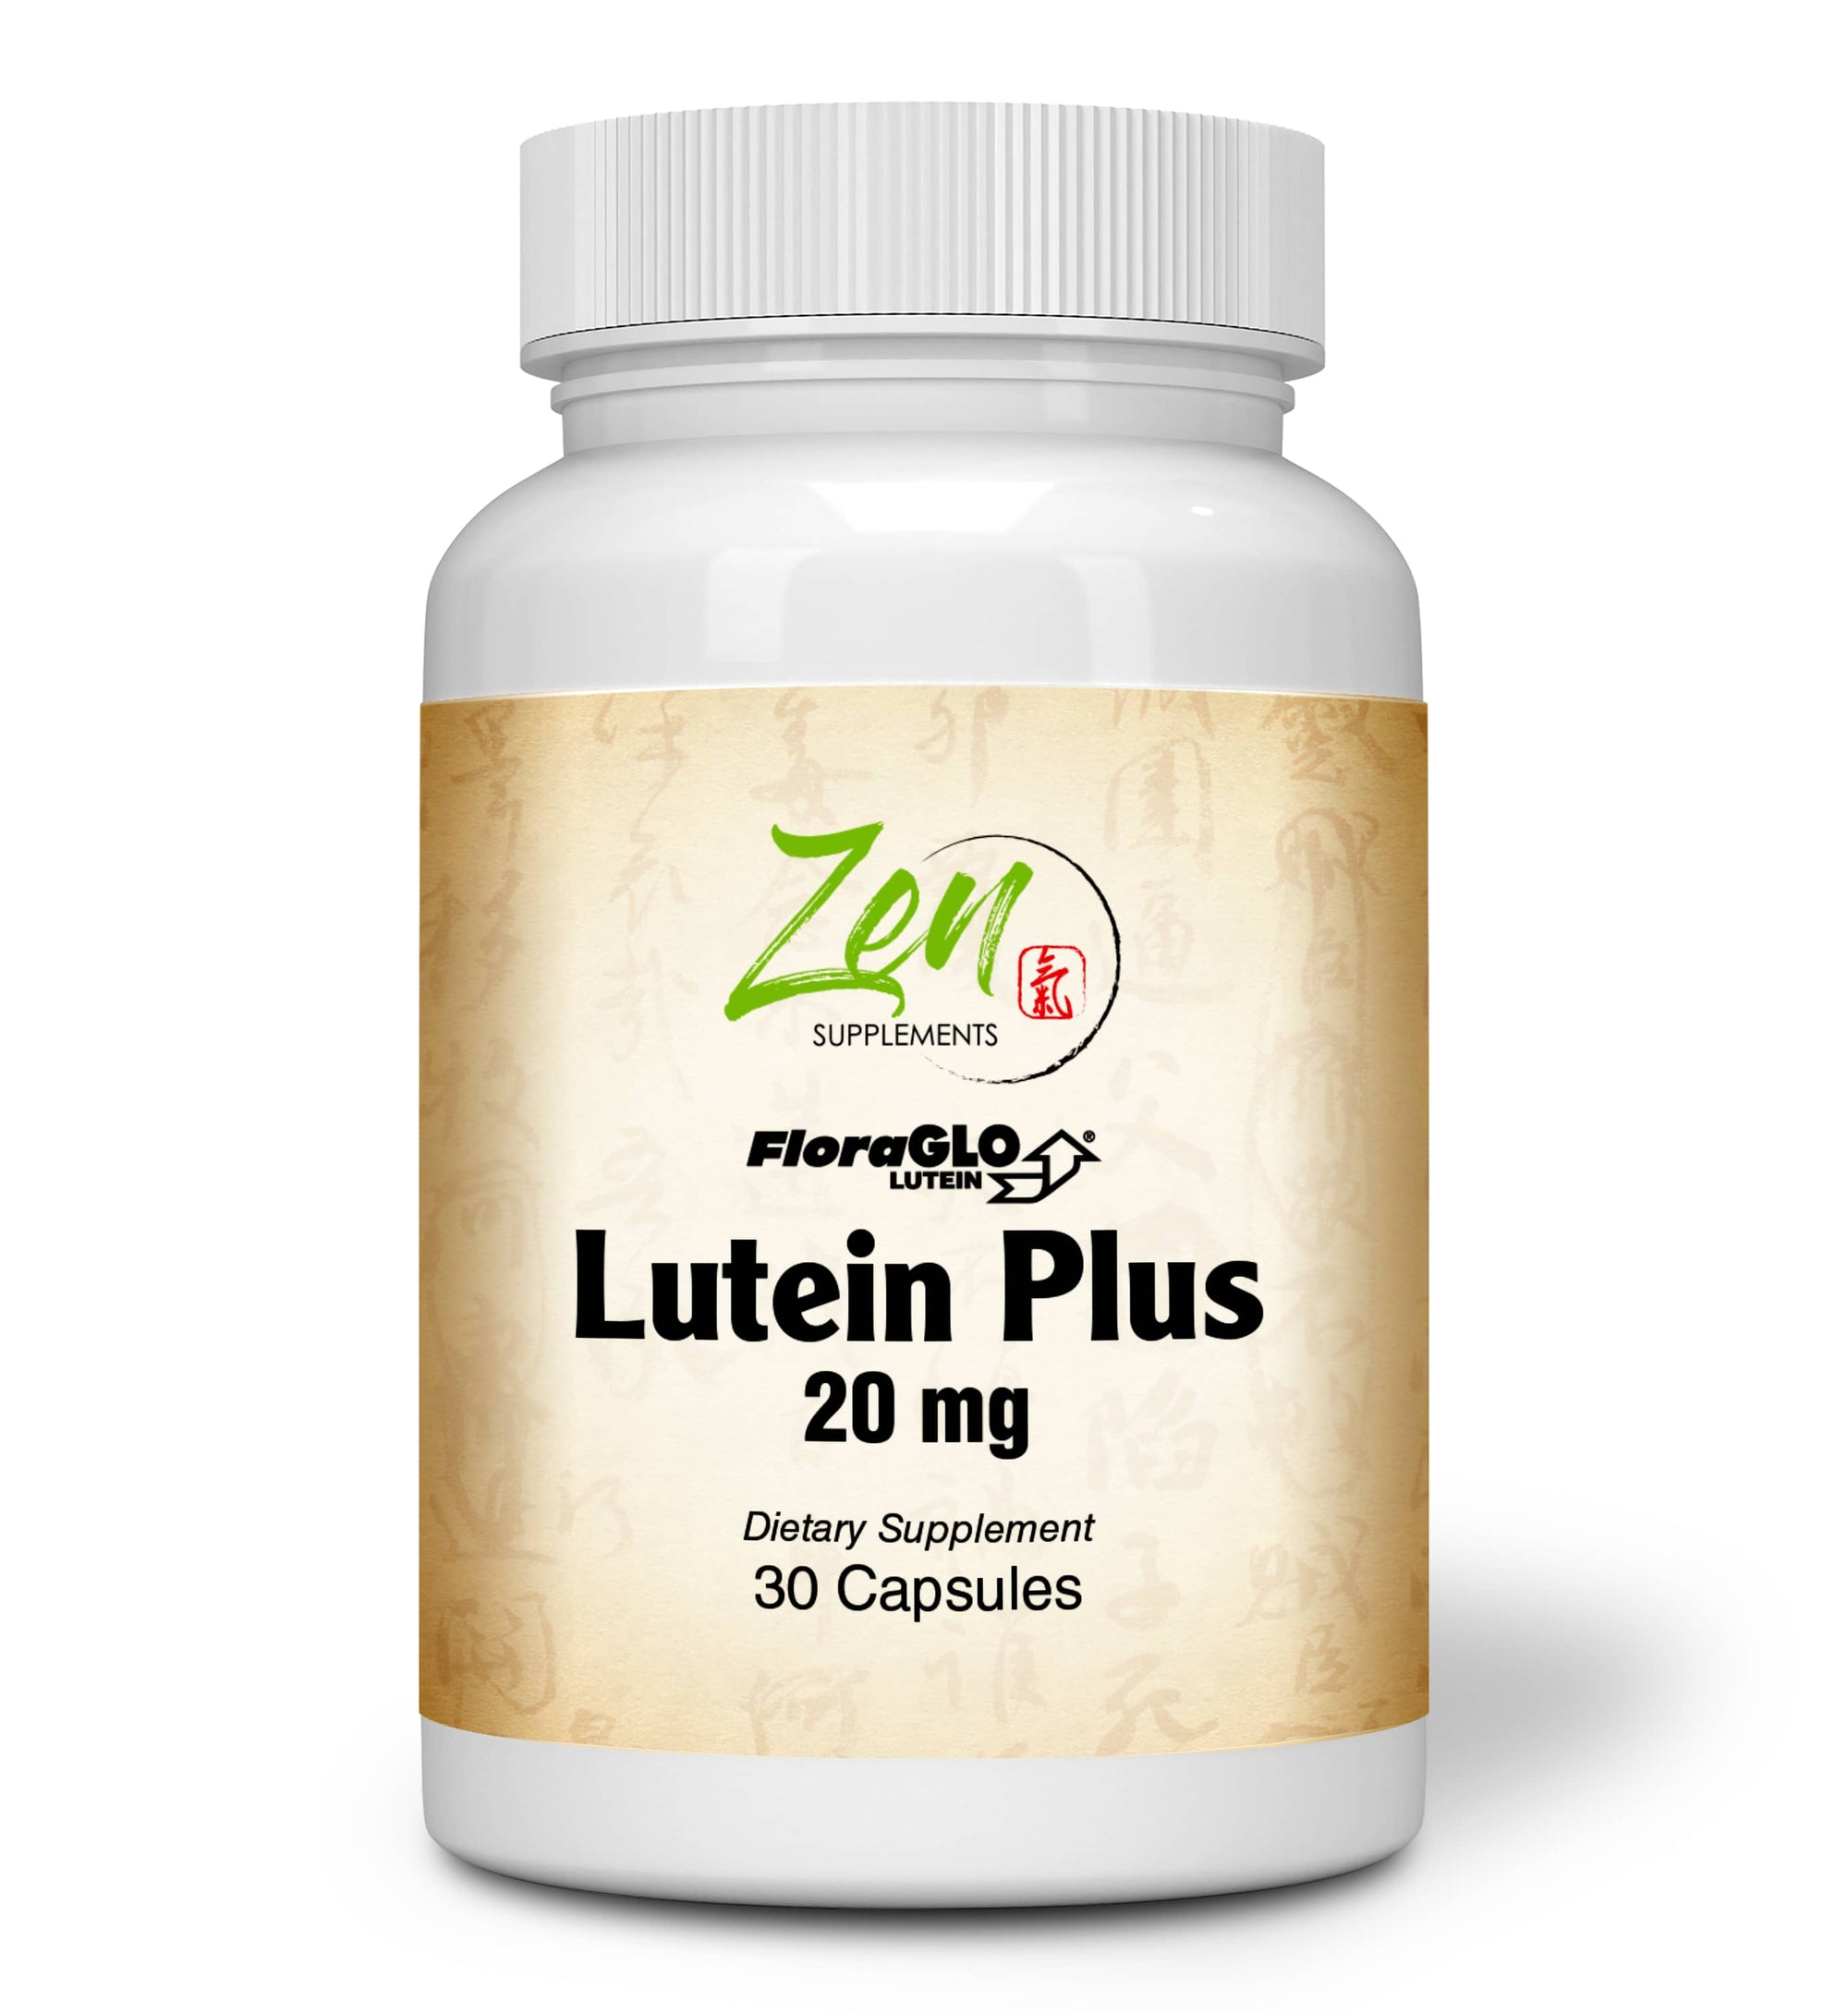 Lutein Plus 20mg - With Bilberry & Zeaxanthin - 30 Caps